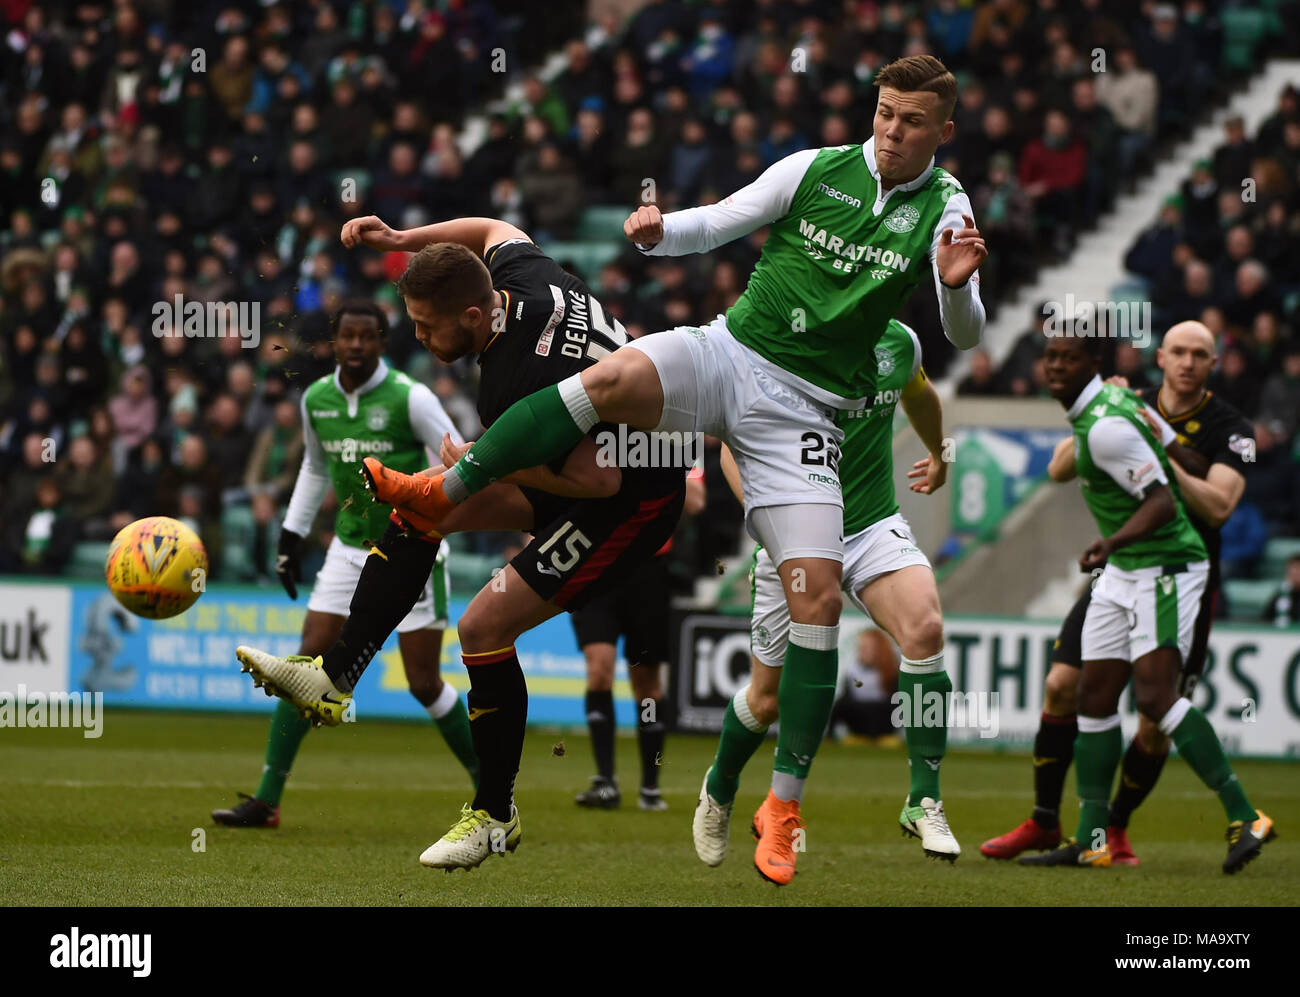 Scottish Premiereship, Hibernian v Partick Thistle, Edinburgh, Midlothian, UK. 31,03, 2018. Pic shows:  Partick Thistle defender, Daniel Devine, manages to clear the ball from the feet of Hibs' Florian Kamberi  during the Scottish Premiereship clash between Hibernian and Partick Thistle at Easter Road Stadium, Edinburgh.  Credit: Alamy/Ian Jacobs - Stock Image